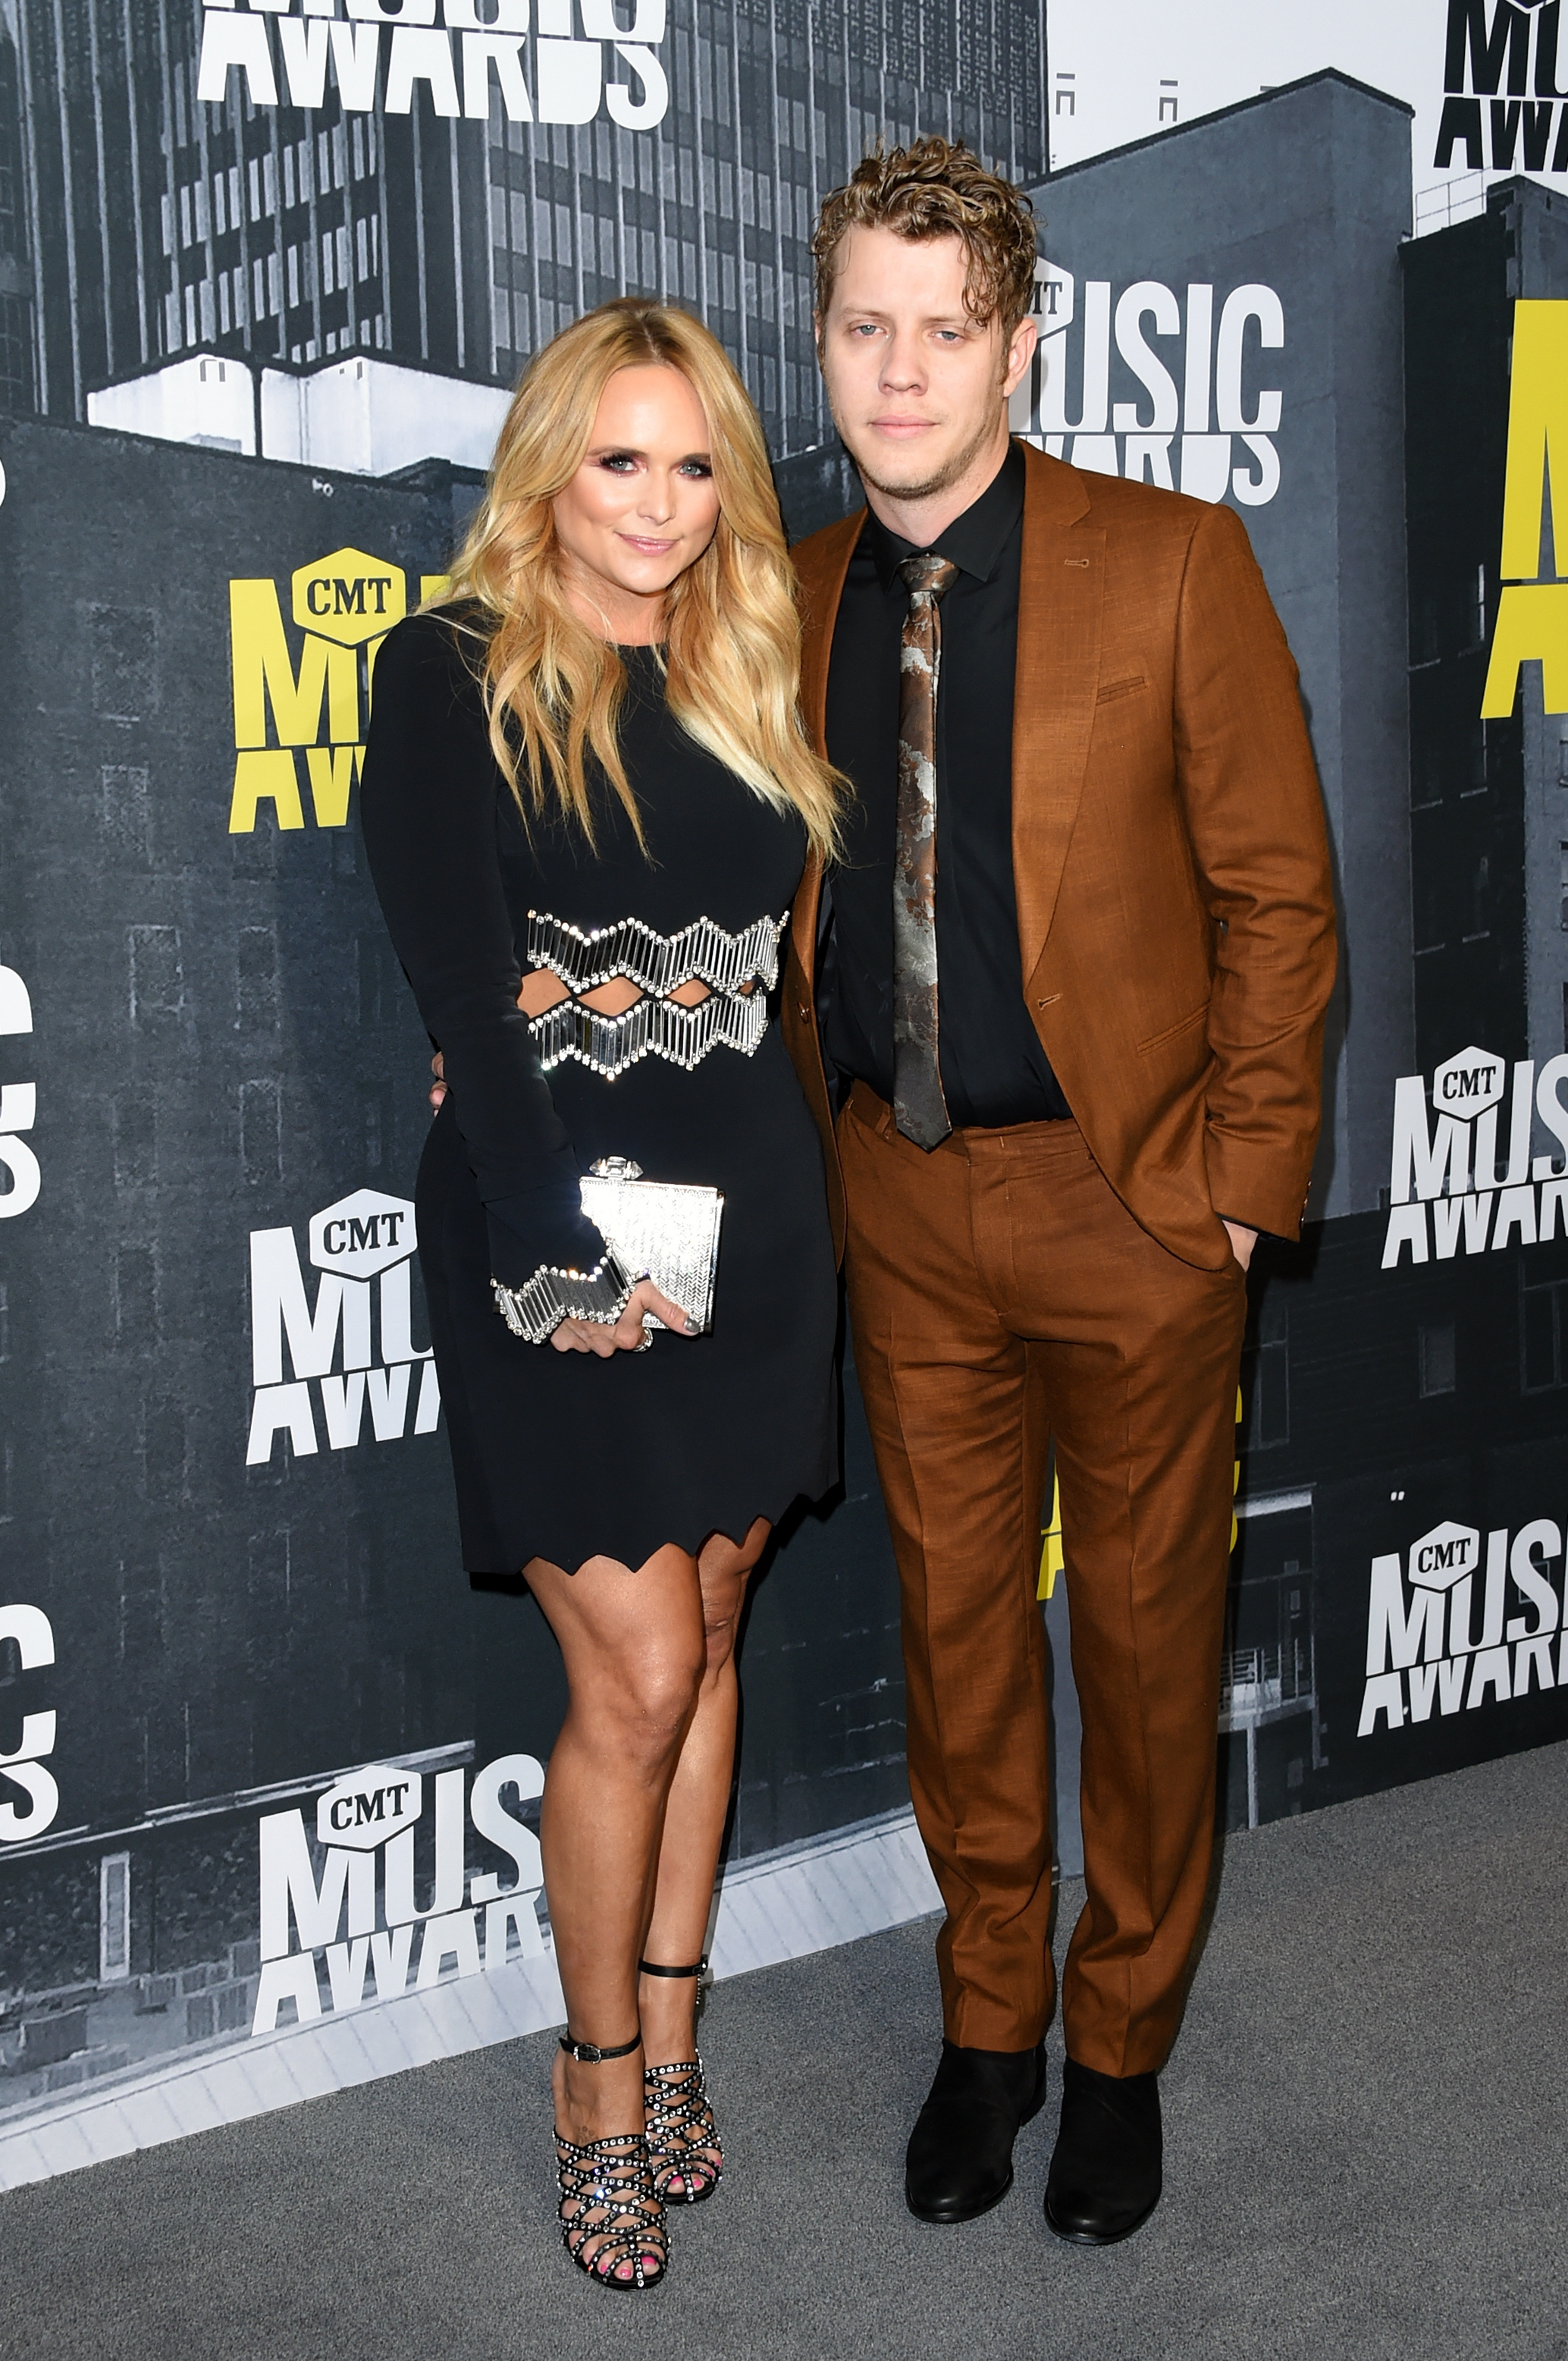 Miranda Lambert and Anderson East attend the 2017 CMT Music Awards at the Music City Center  in Nashville, Tennessee, on June 7, 2017.